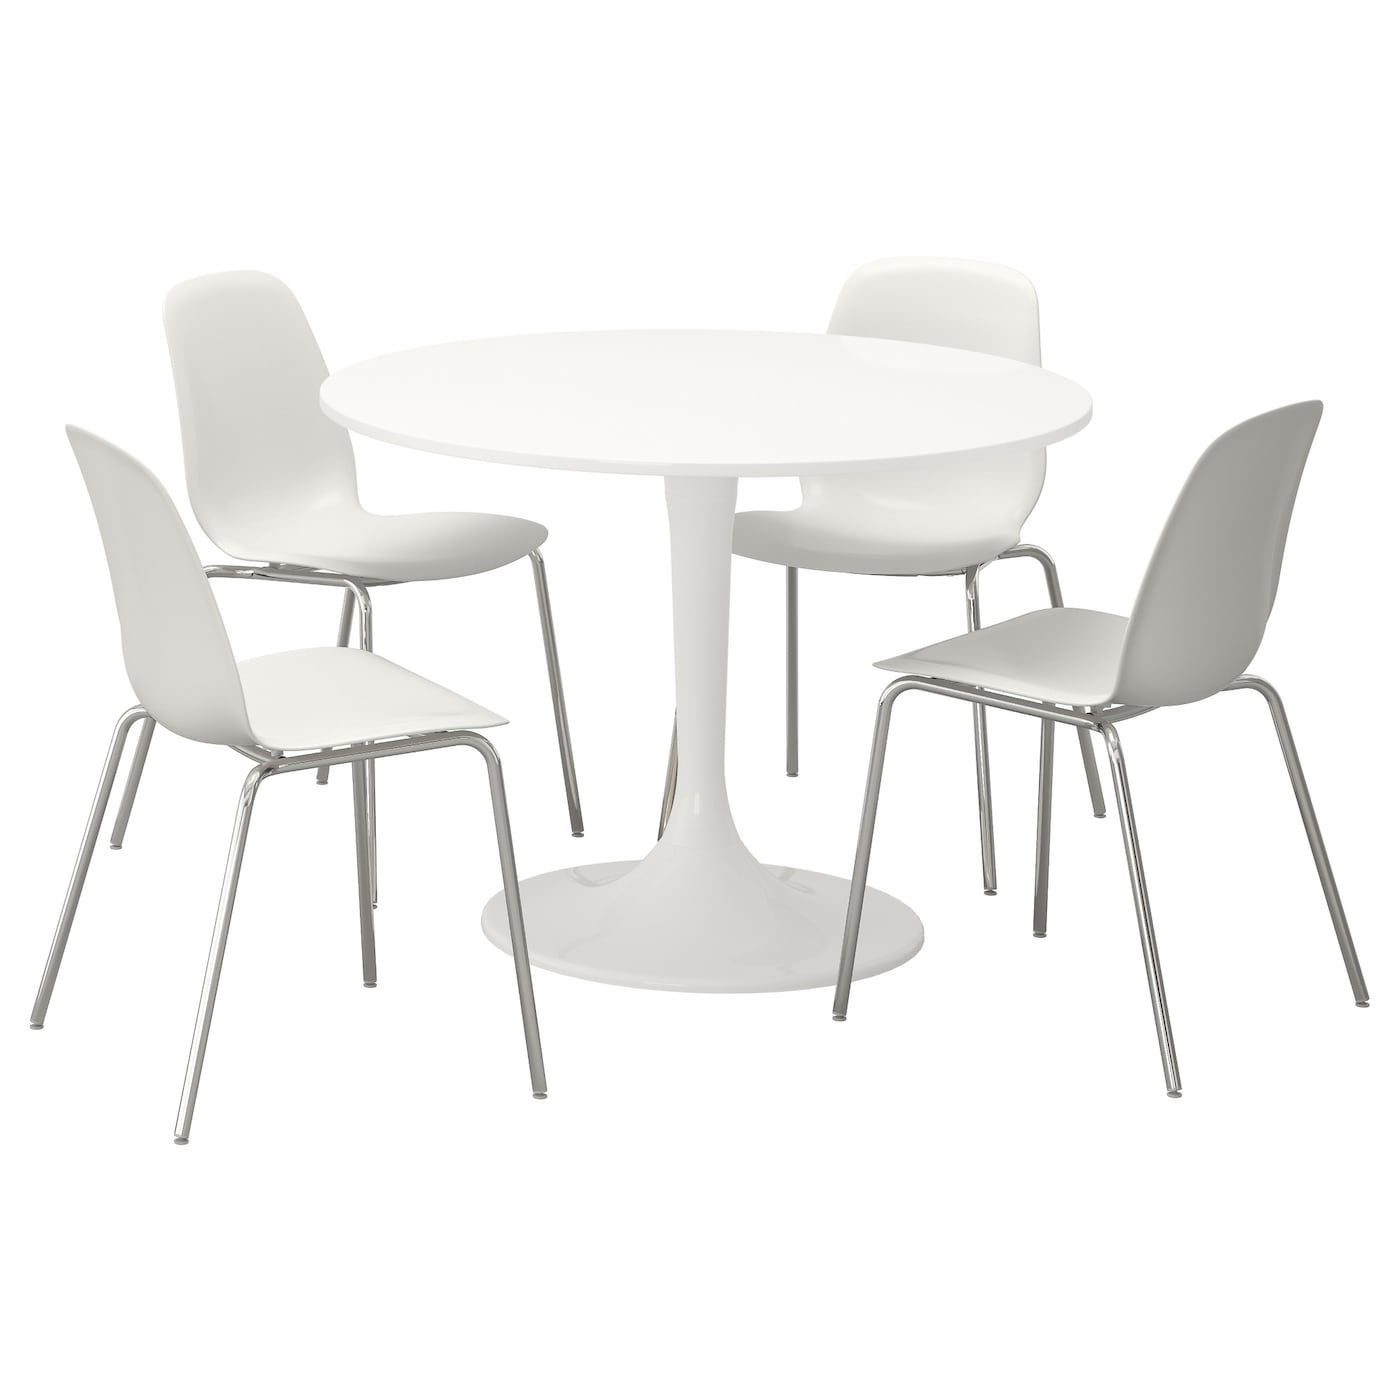 Docksta leifarne table and 4 chairs white white 105 cm ikea for White round dining table set